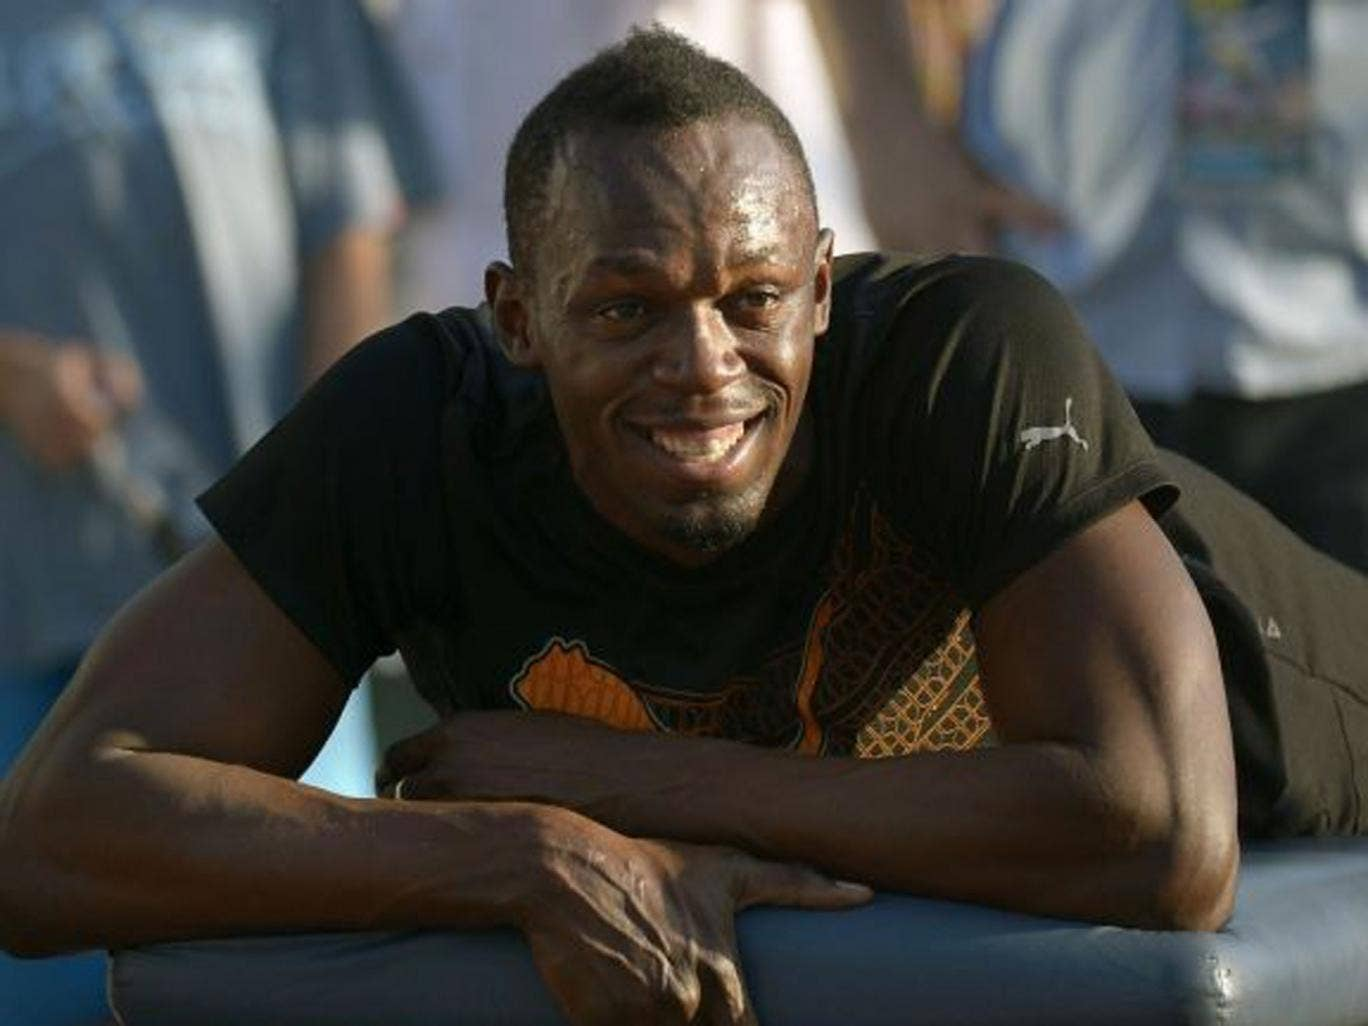 Bolt has welcomed the new rule that may see athletes hair tested